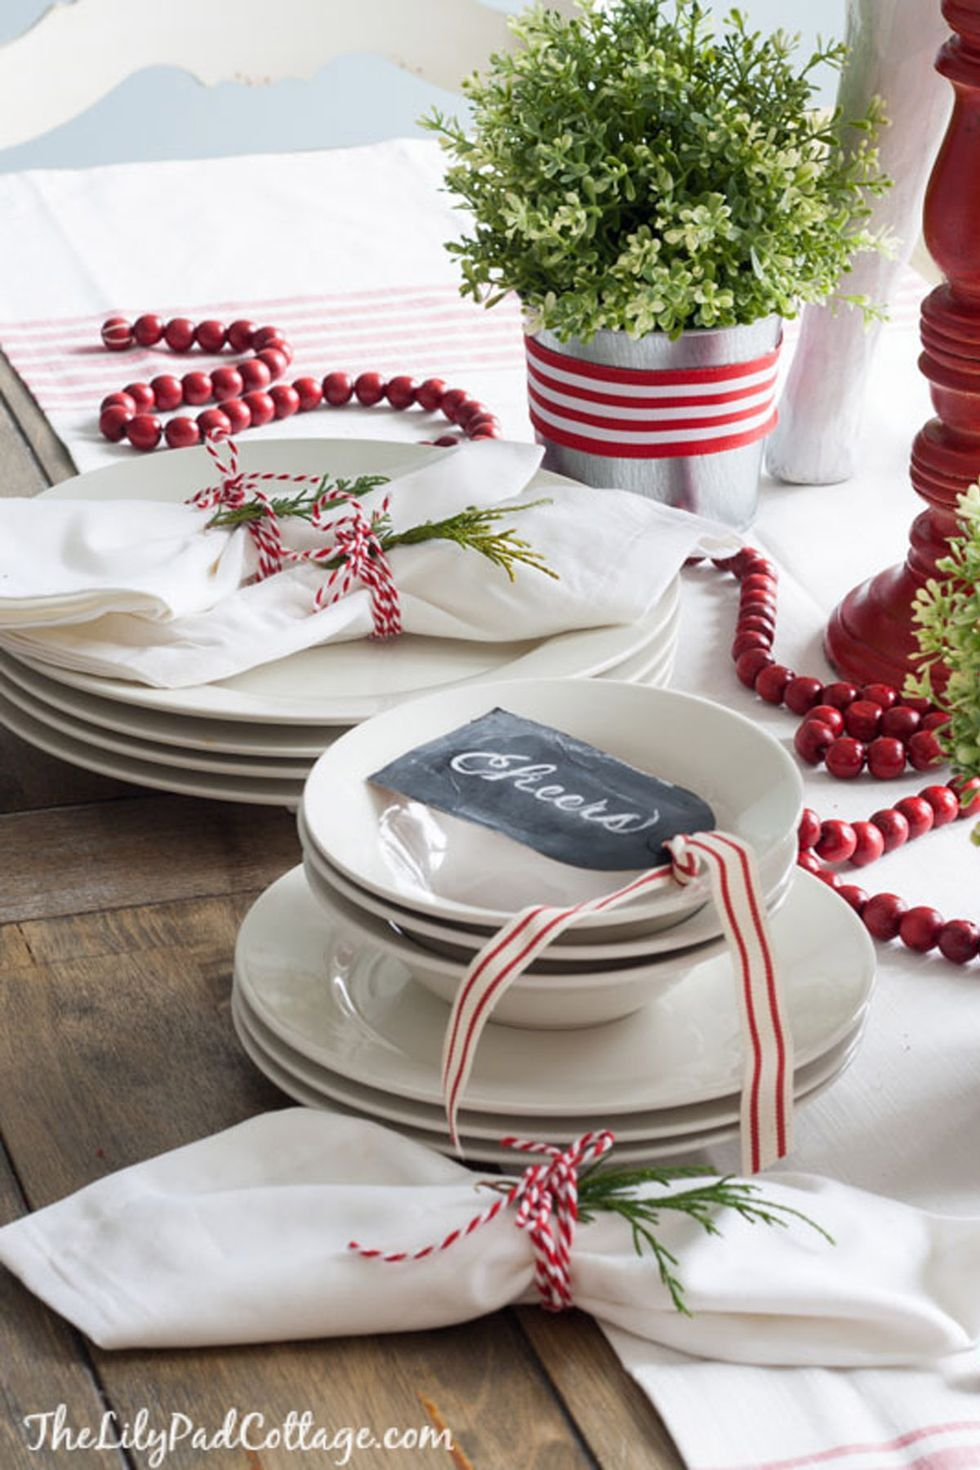 53 Best Christmas Table Settings , Decorations and